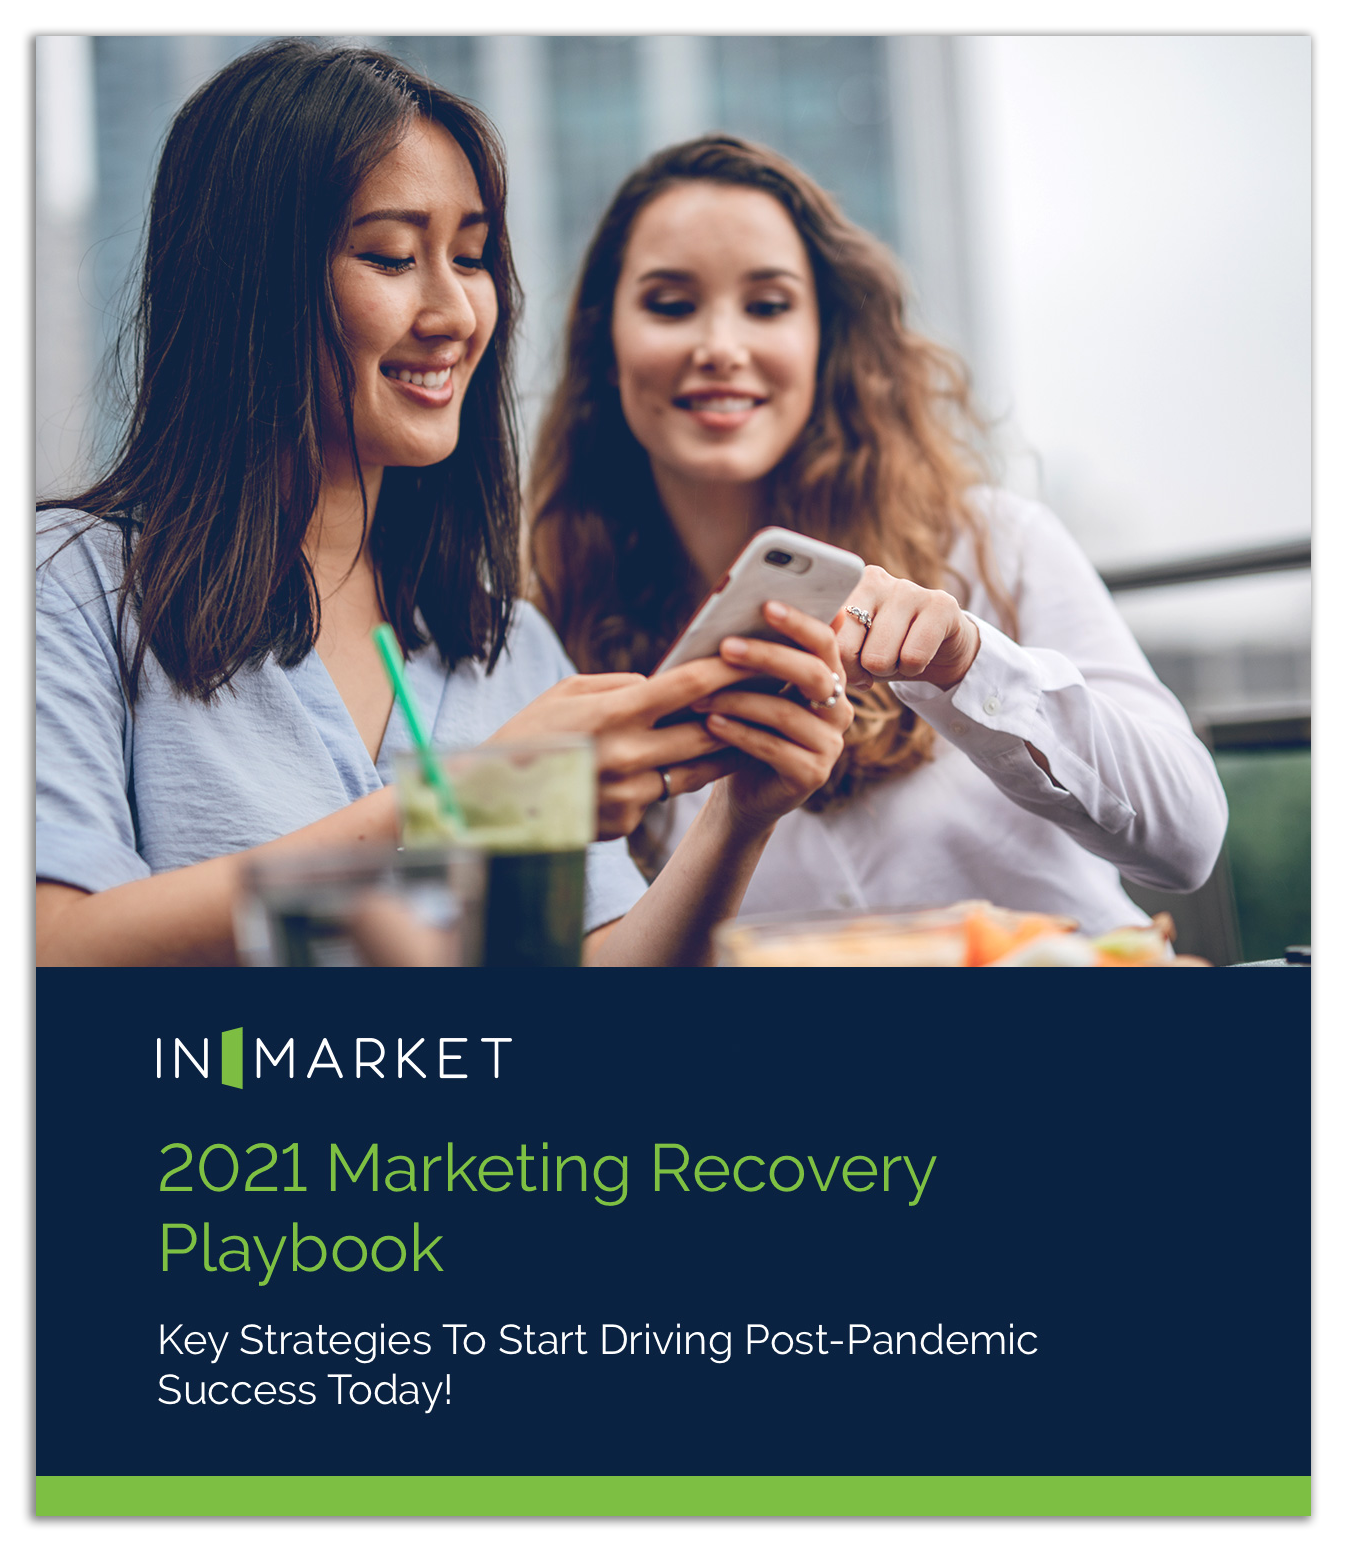 2021 Marketing Recovery Playbook Cover Photo-shadowed